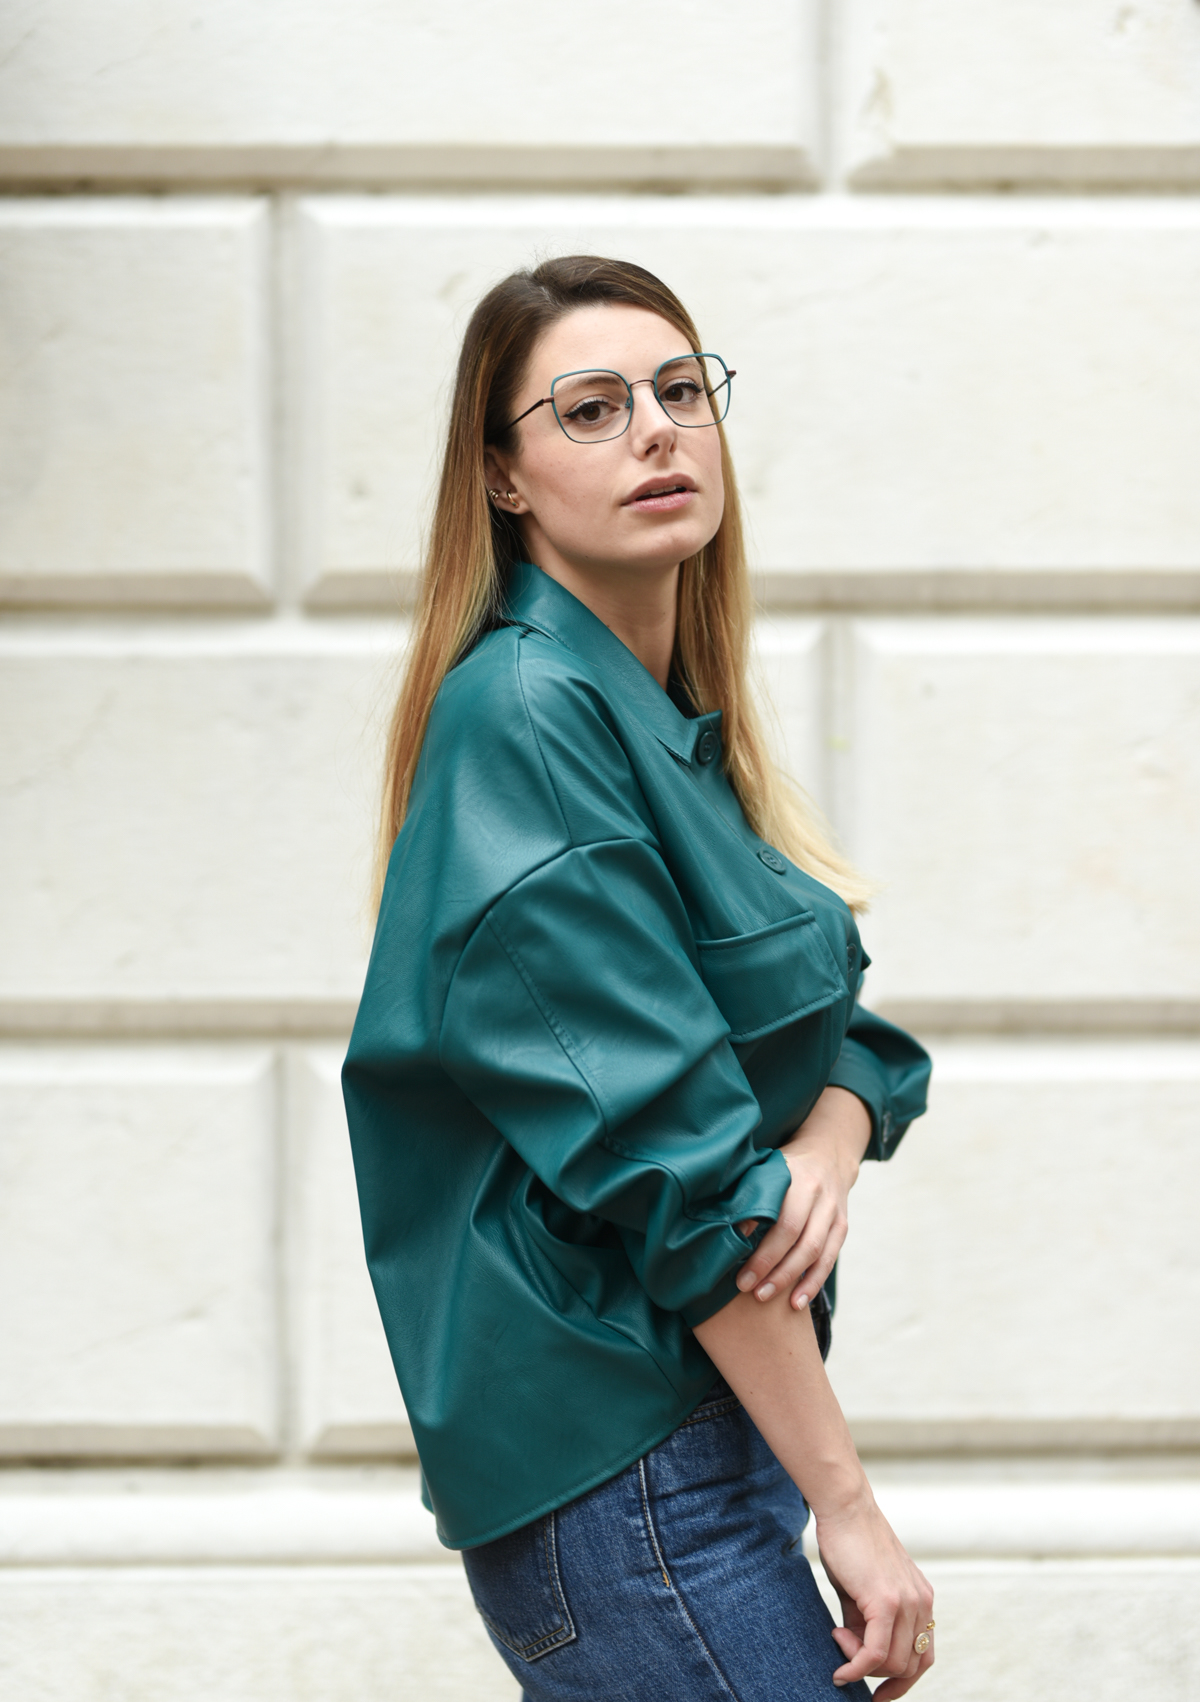 giulia de martin woow full moon2 eyeglasses fall winter 2019 2020 behidn my glasses teal green blue occhiali da vista eyewear blog influencer -1